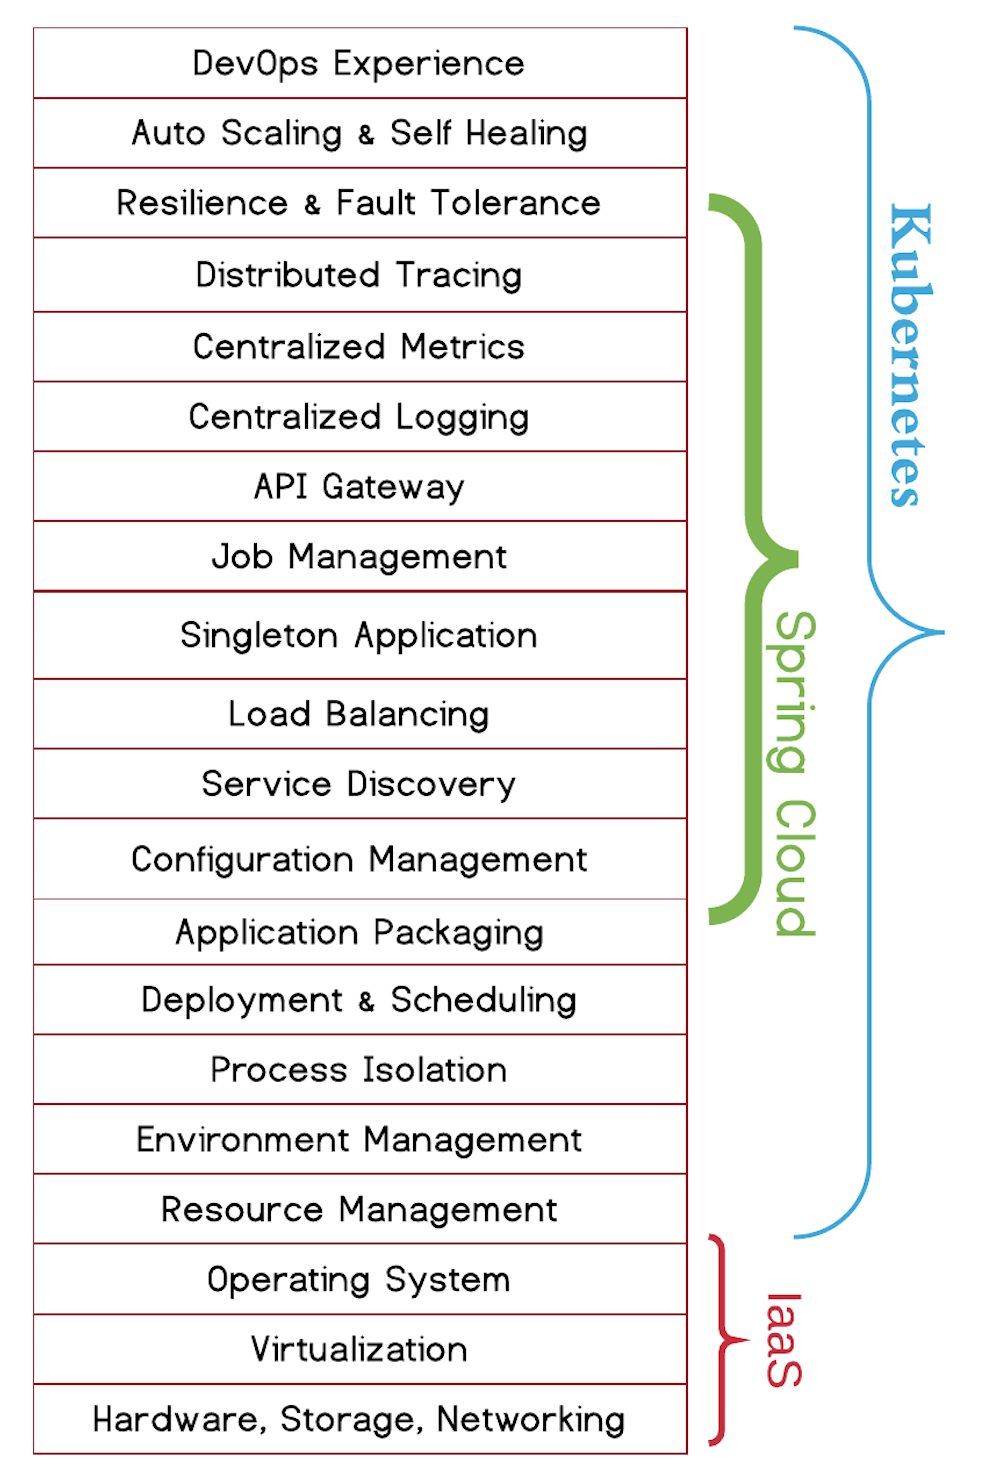 Spring Cloud for Microservices Compared to Kubernetes - Red Hat